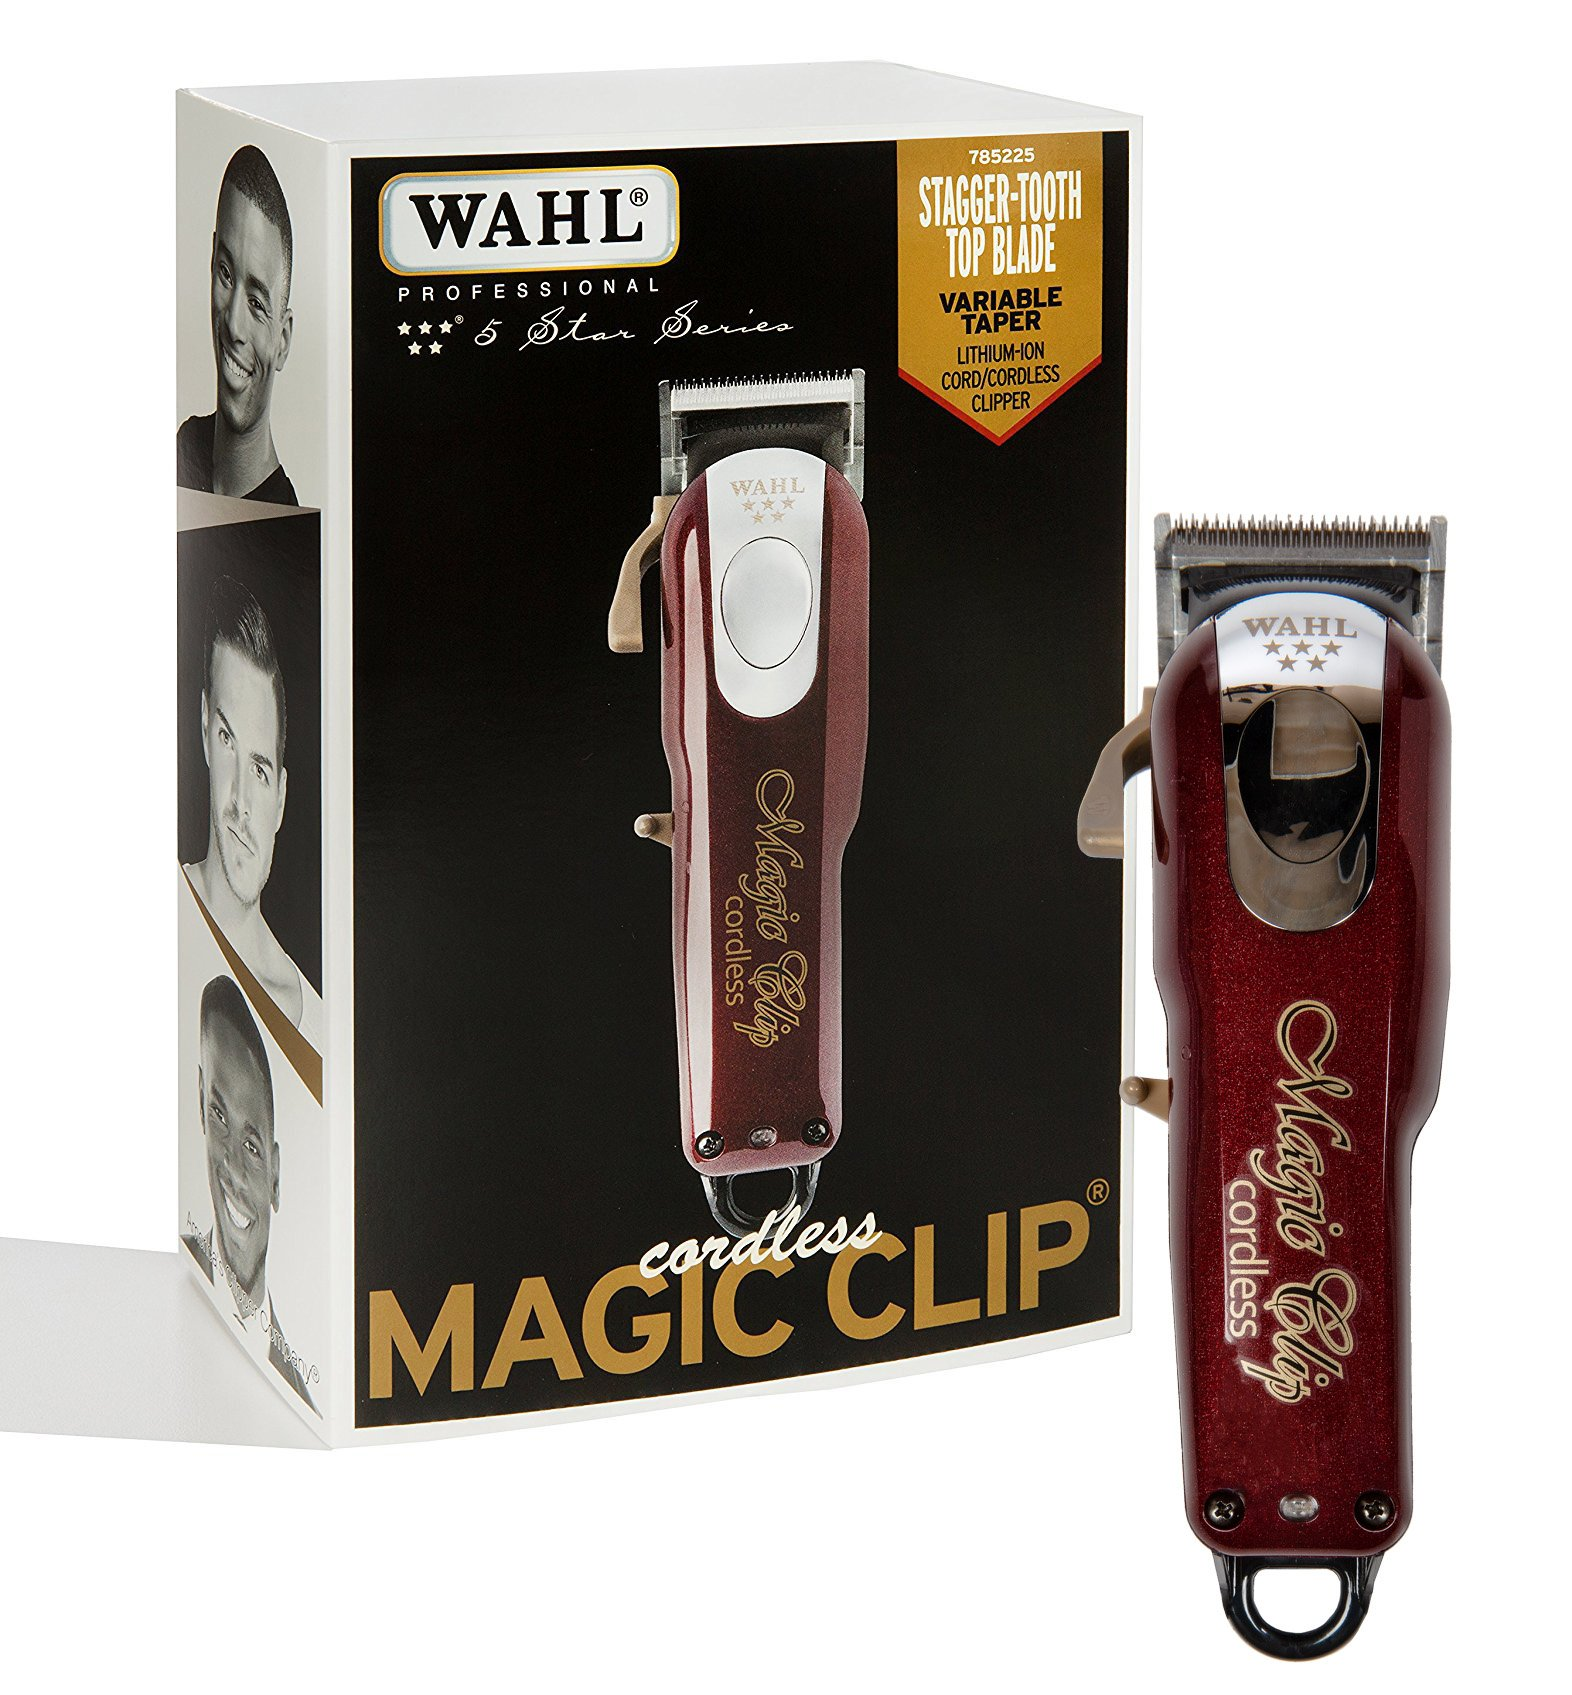 Wahl Professional 5-Star Cord/Cordless Magic Clip #8148 – Great for Barbers and Stylists – Precision Cordless Fade Clipper Loaded with Features – 90+ Minute Run Time by Wahl Professional (Image #1)